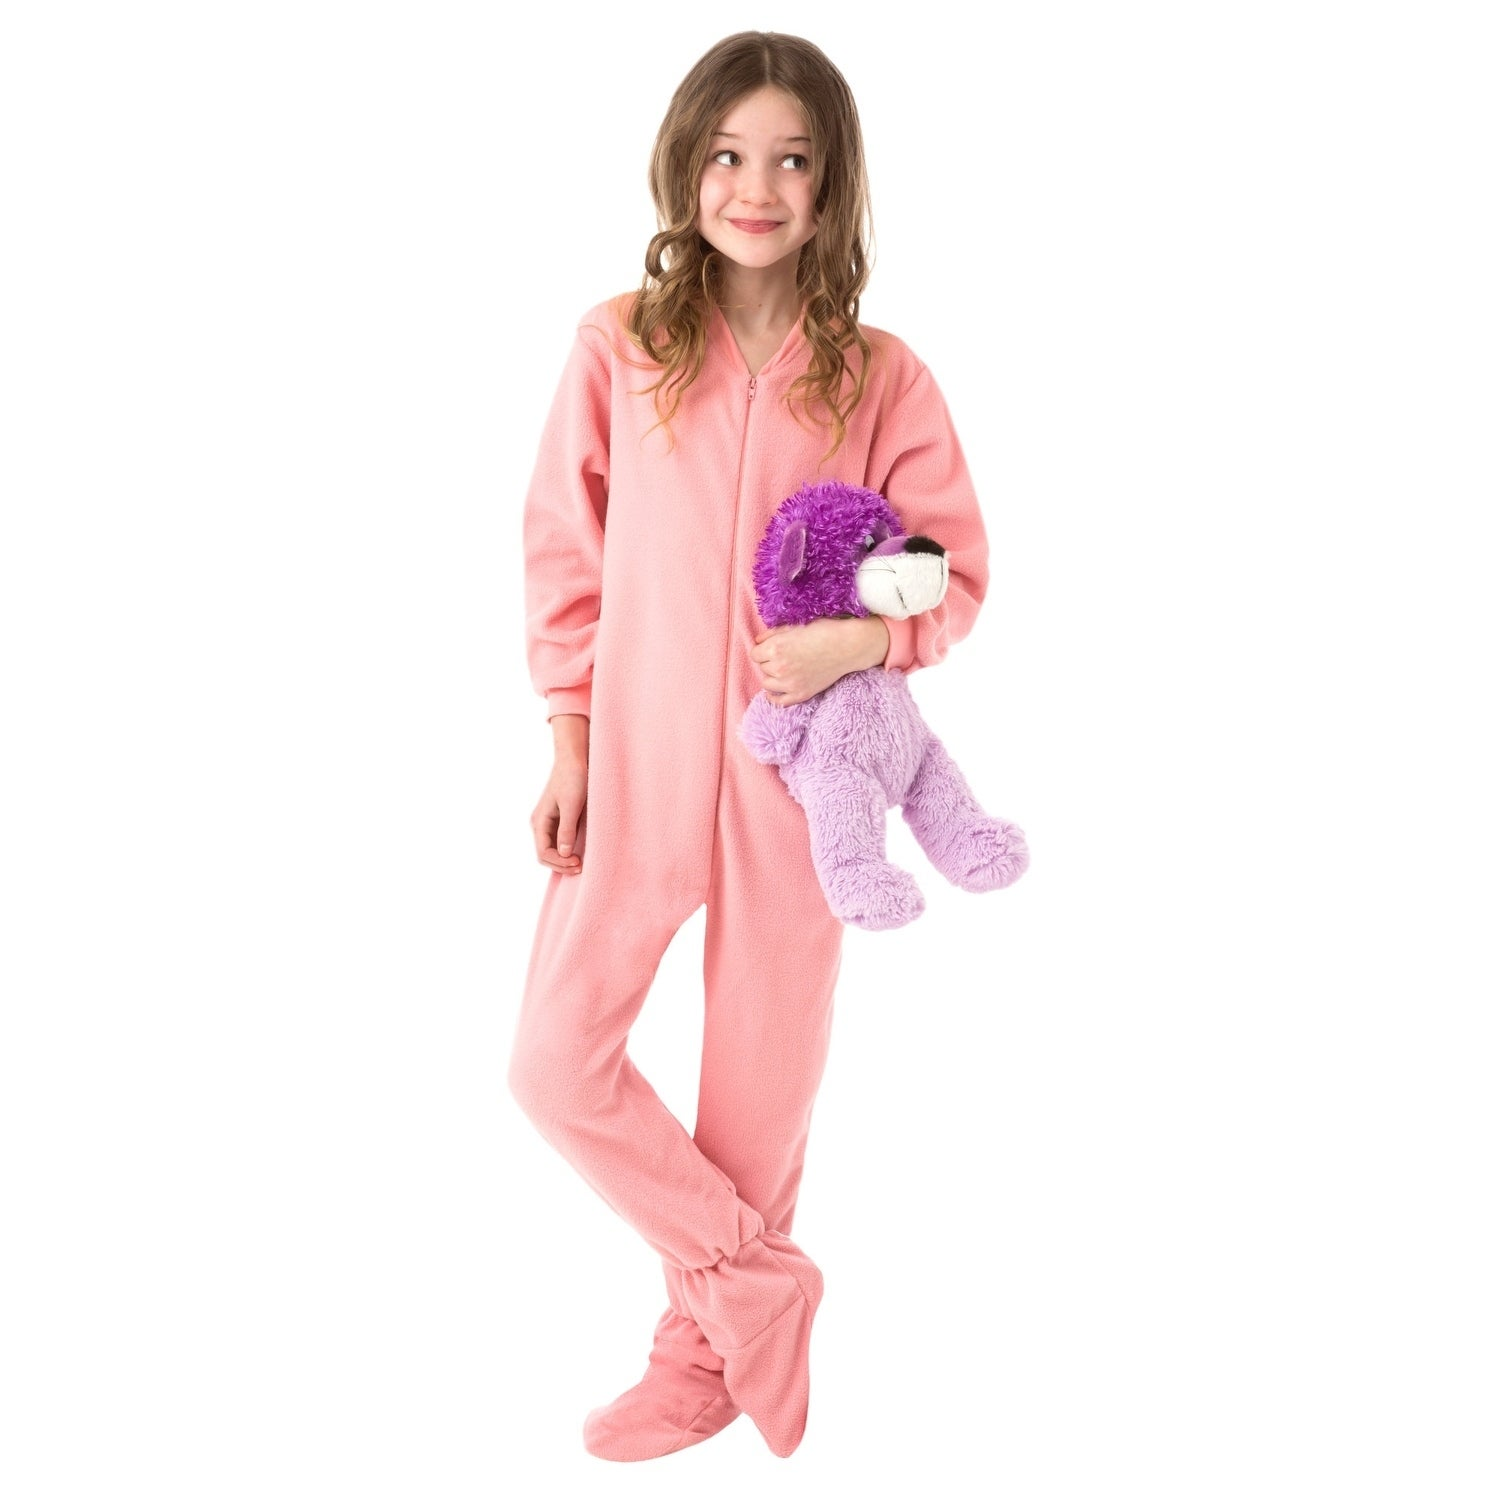 e8b5dc71c968 Big Feet Pjs Big Girls Kids Pink Fleece Footed Pajamas One Piece Sleeper  Footie Pajamas